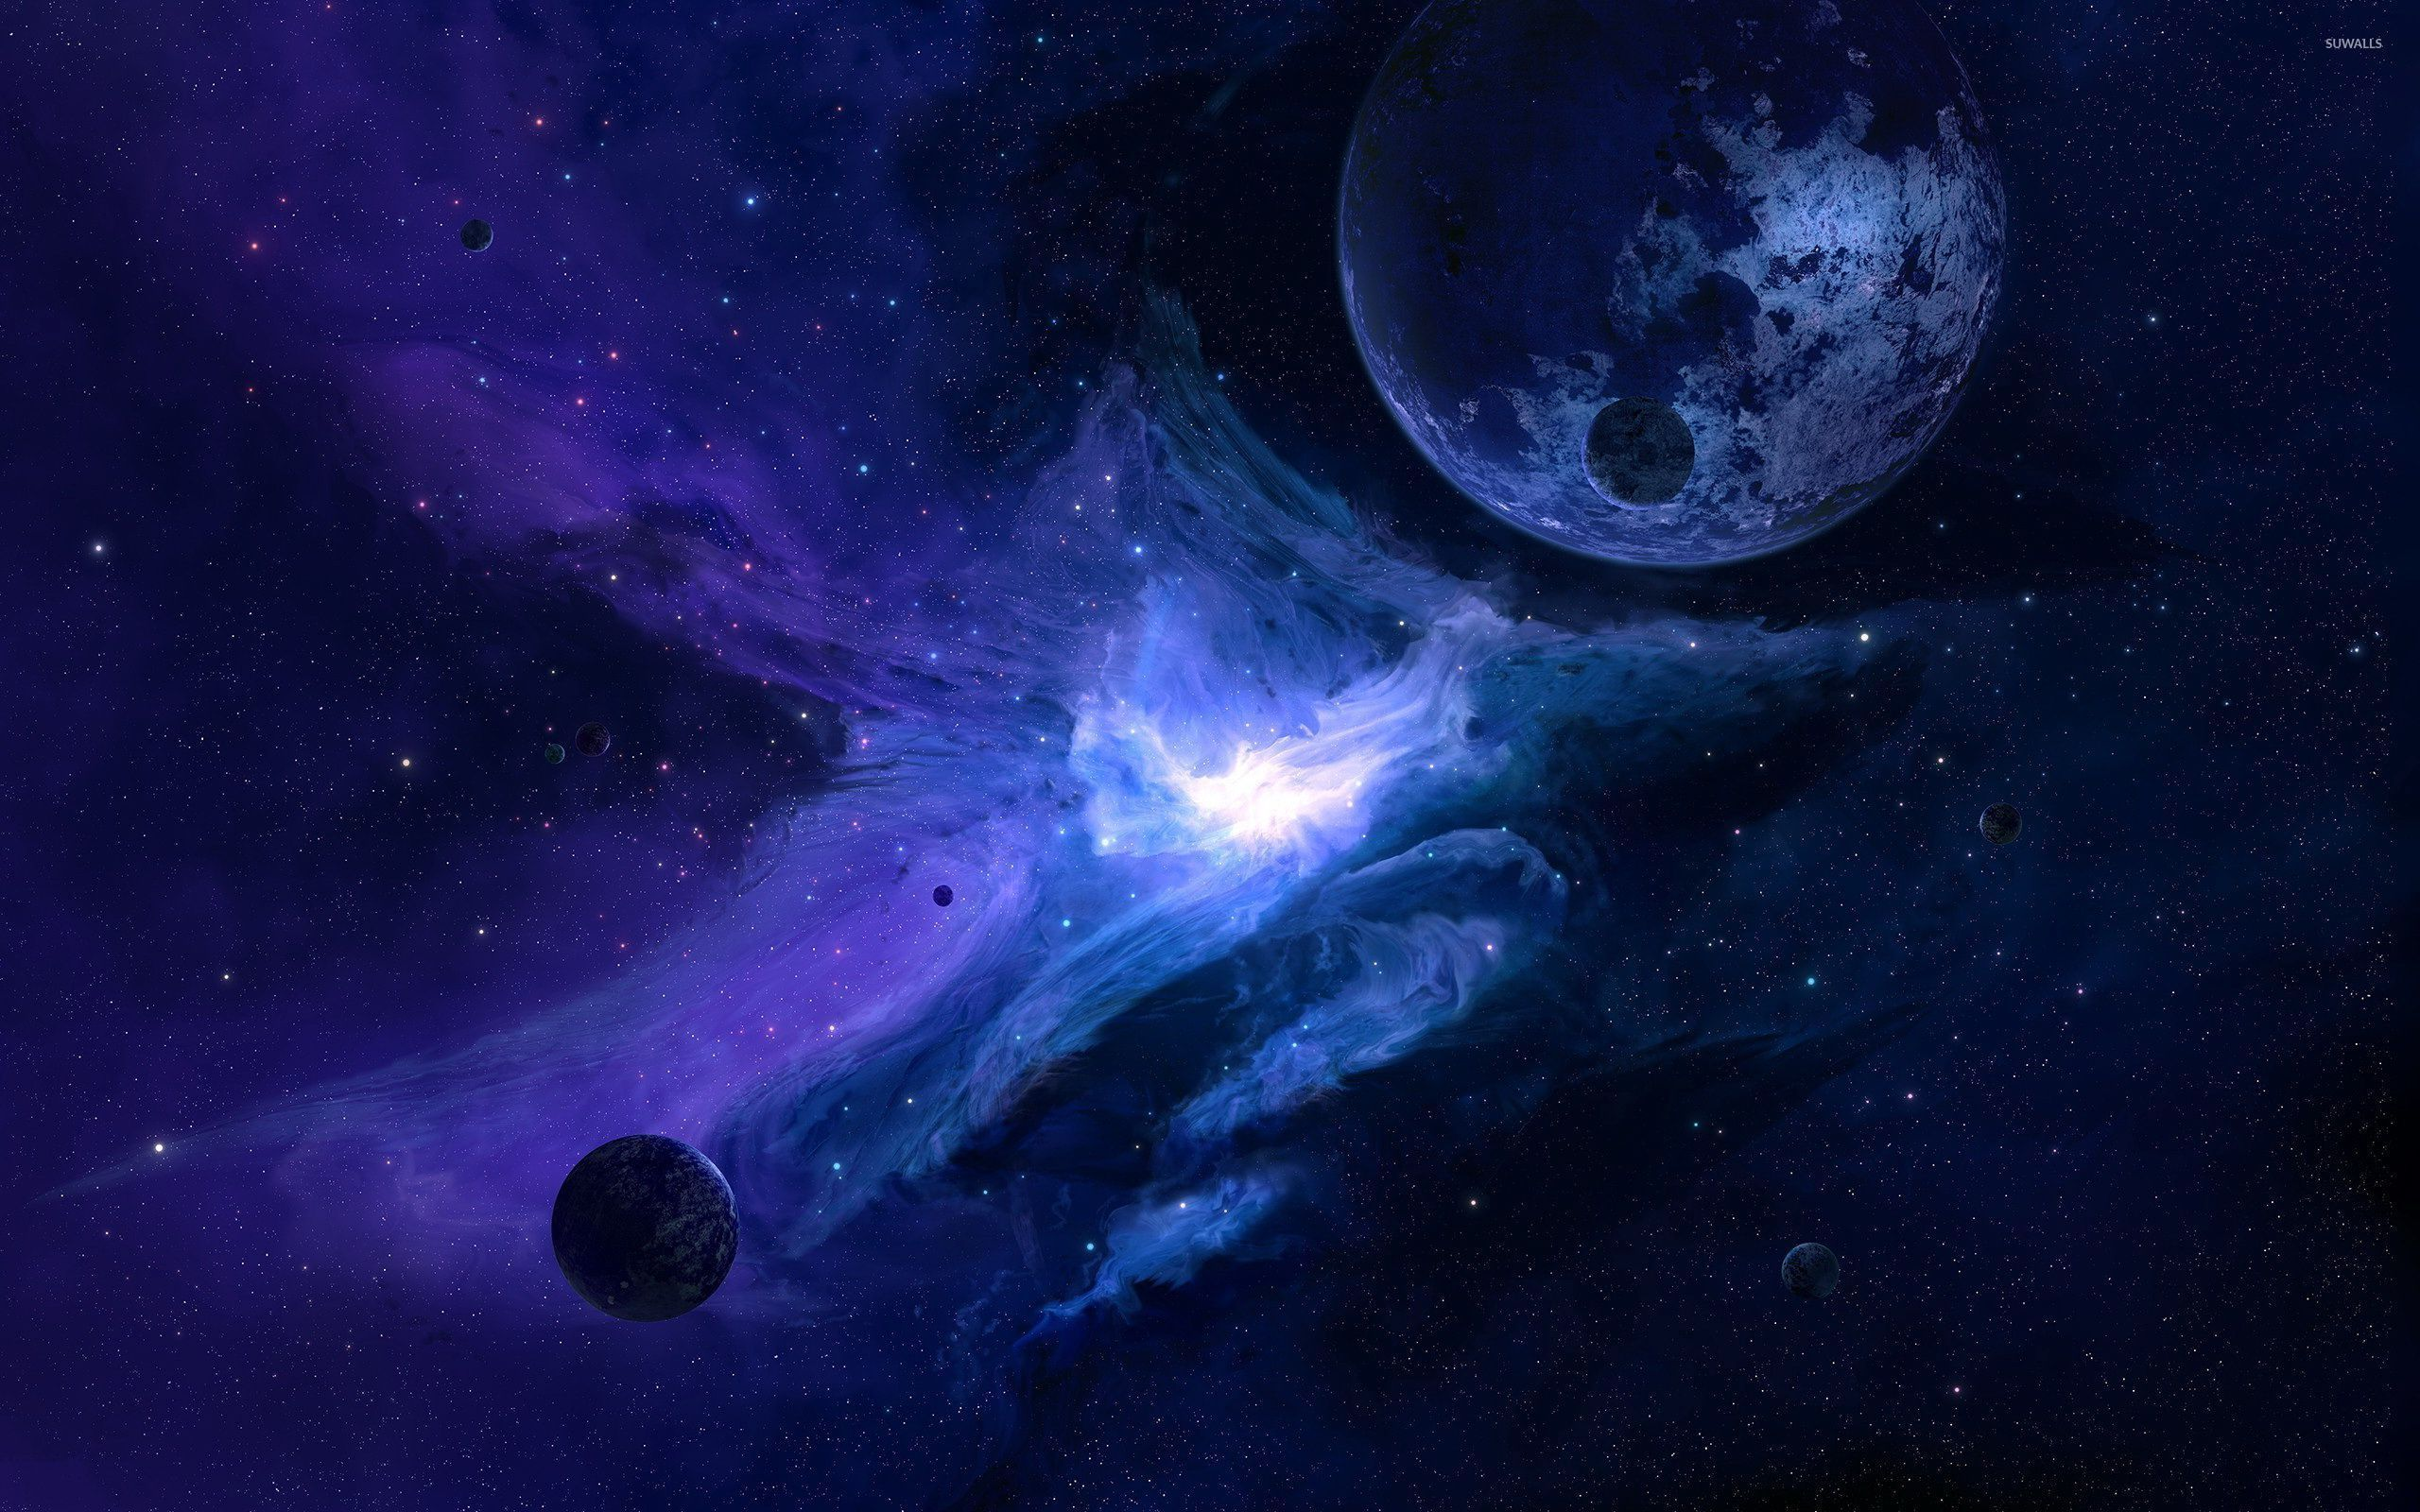 Planet in the blue galaxy wallpaper space wallpapers 52876 - Galaxy and planets ...